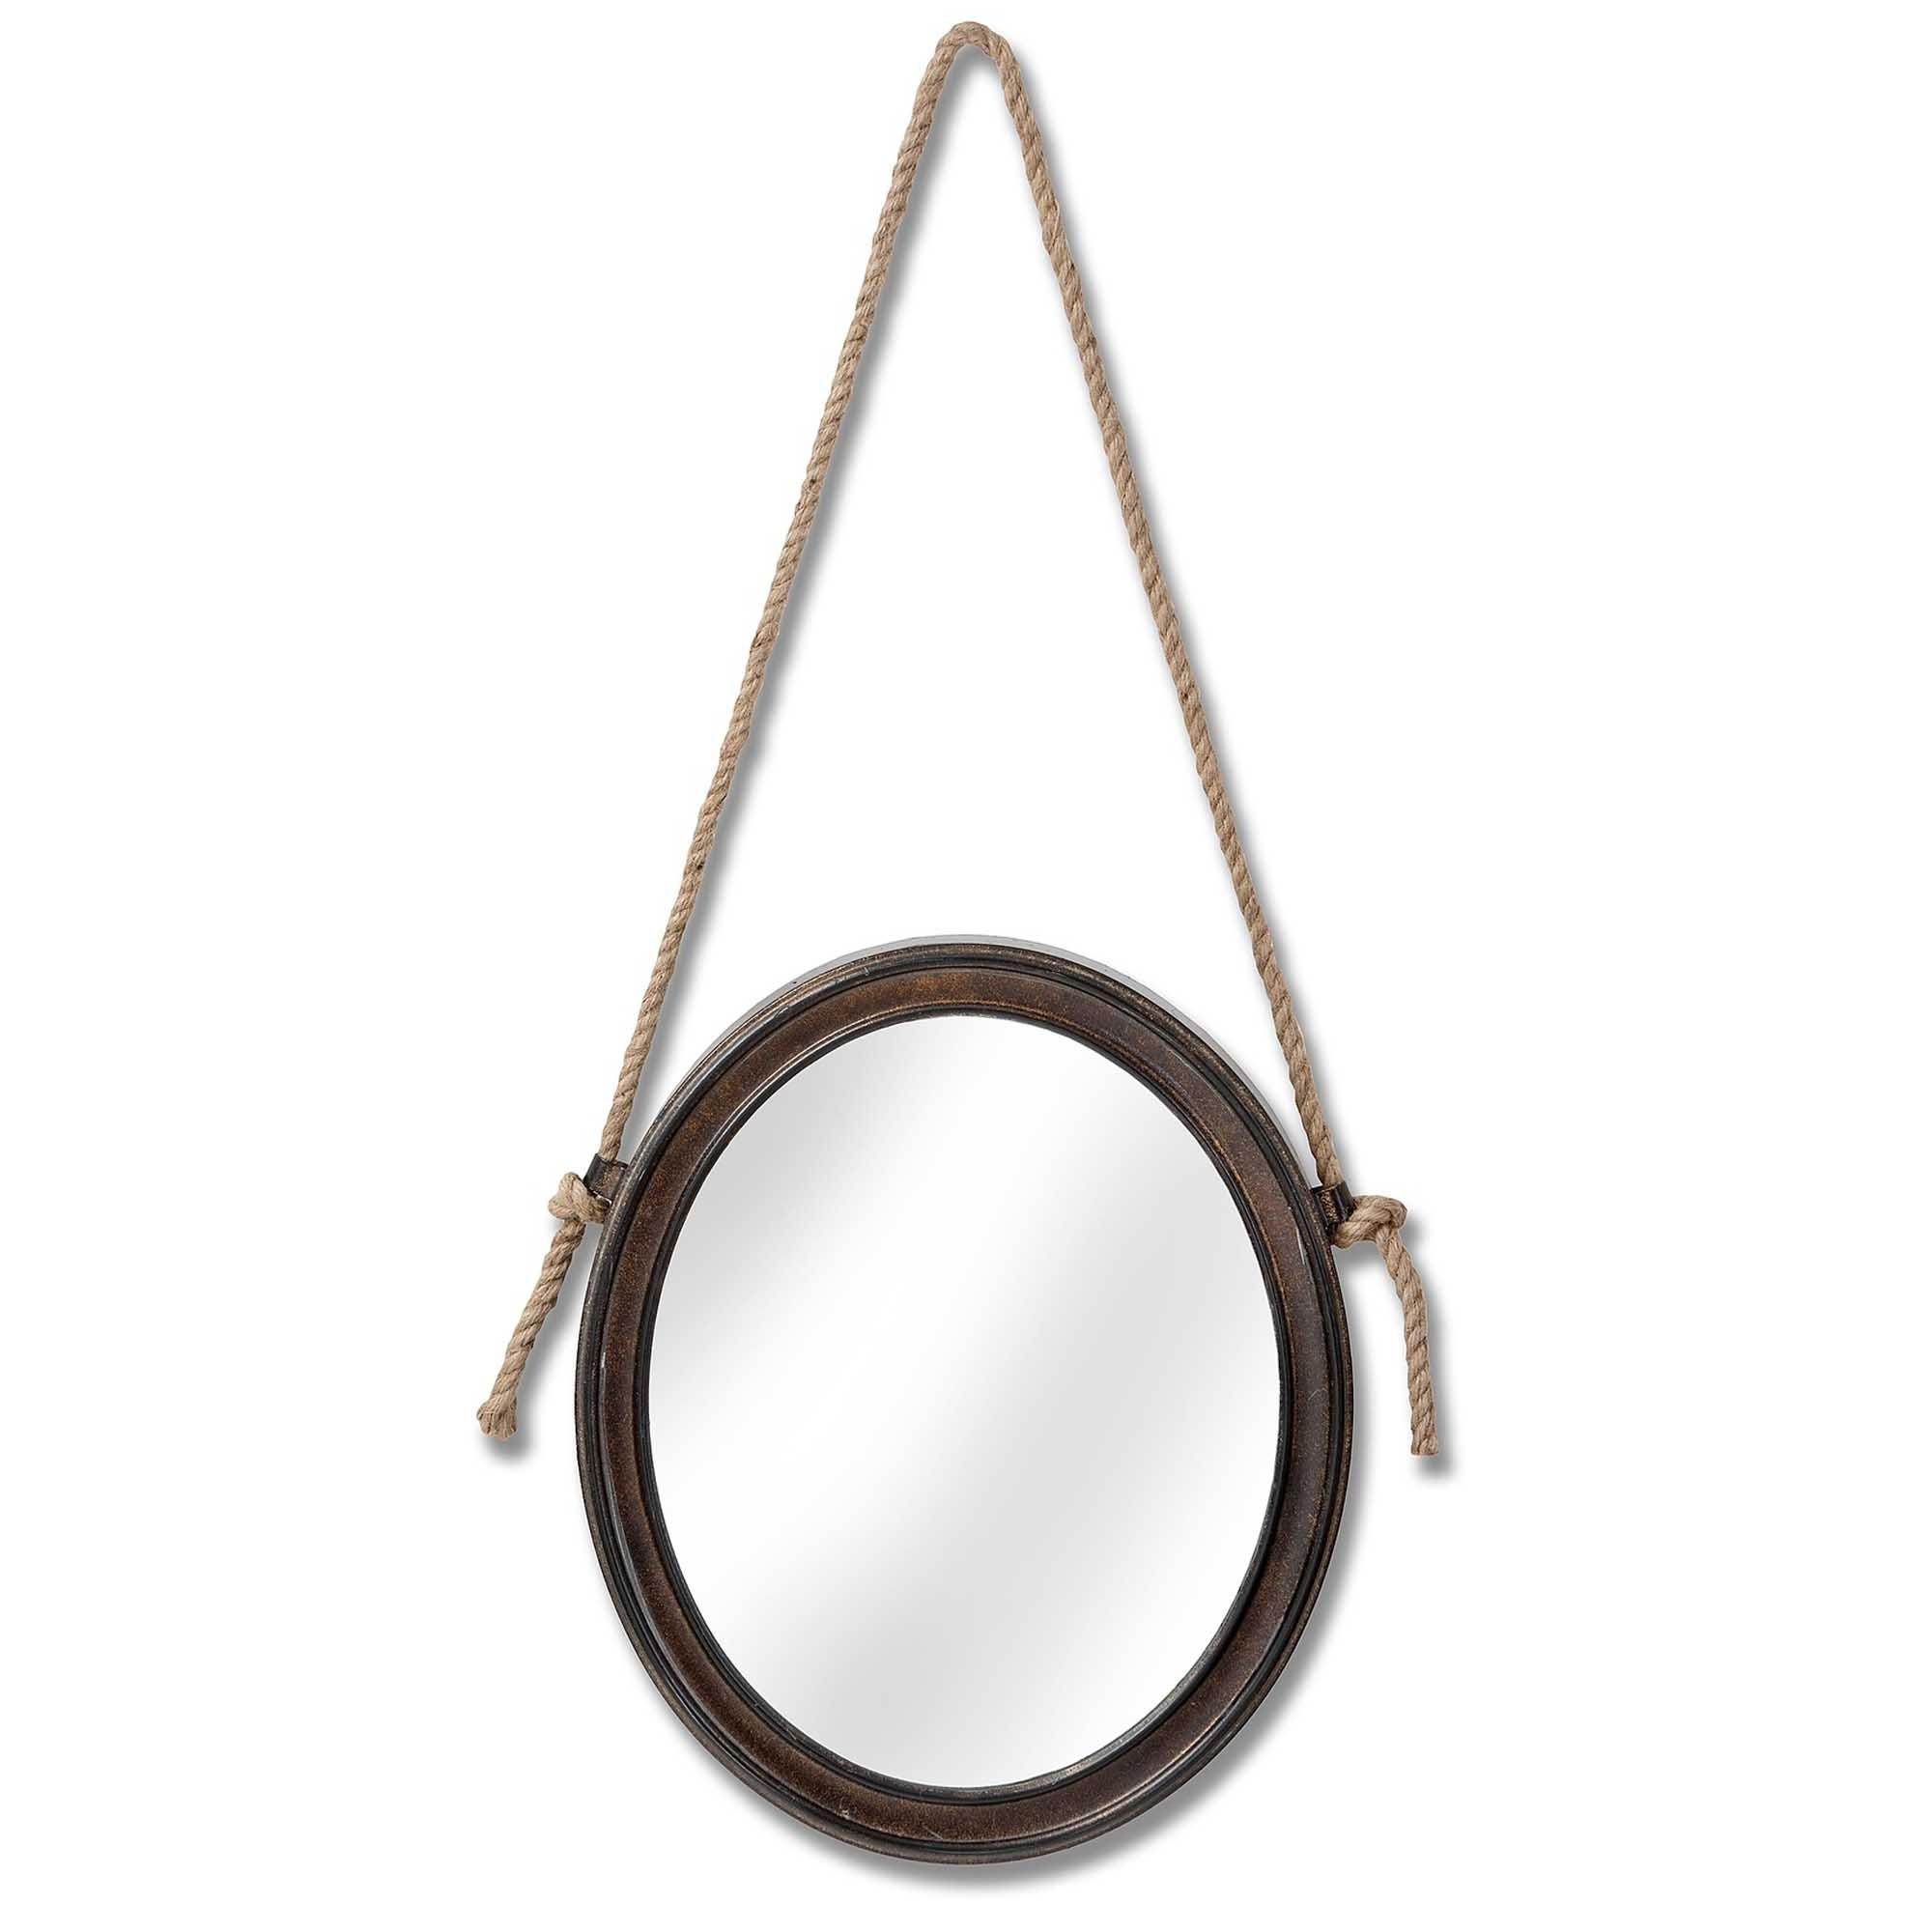 Oval Hanging Rope Rustic Wall Mirror Decor Homesdirect365